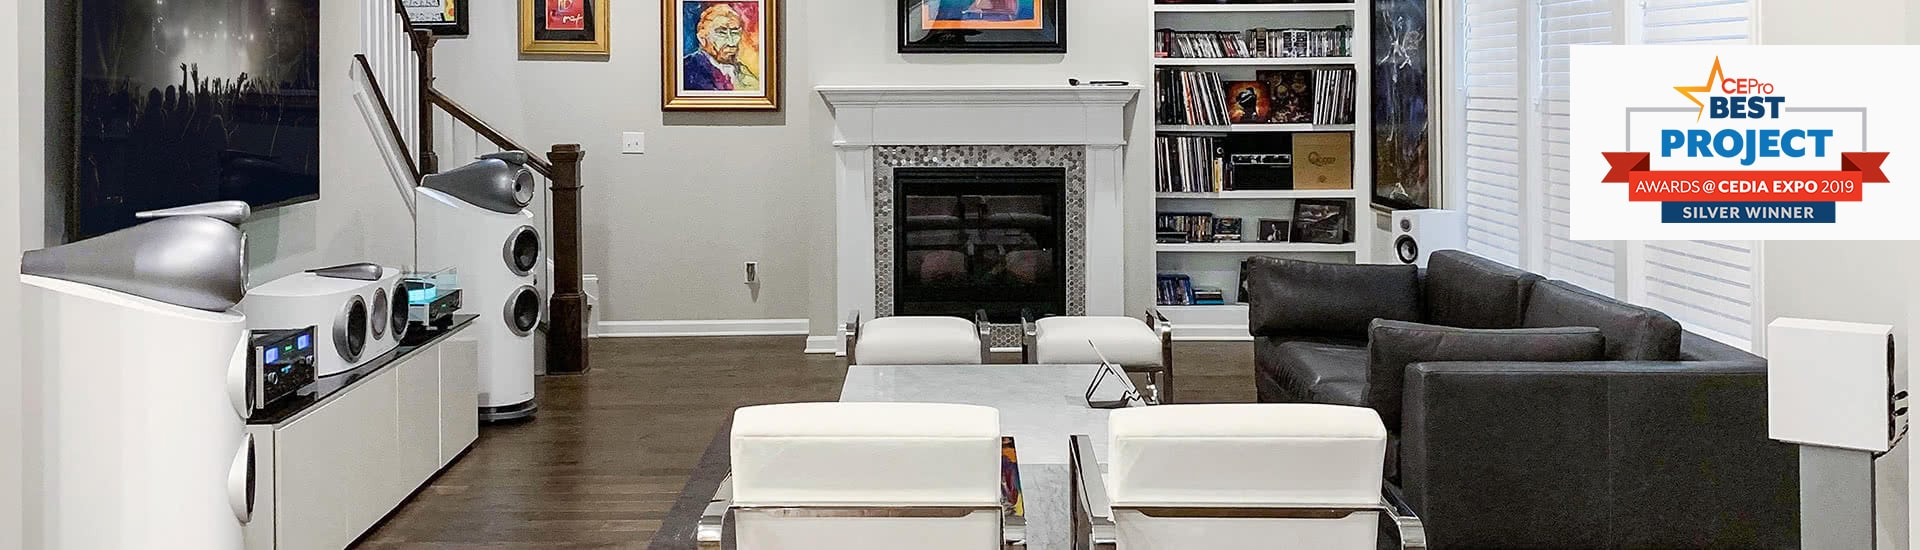 A 9.1 Channel Media Room Powered by Bowers & Wilkins, McIntosh, and Marantz